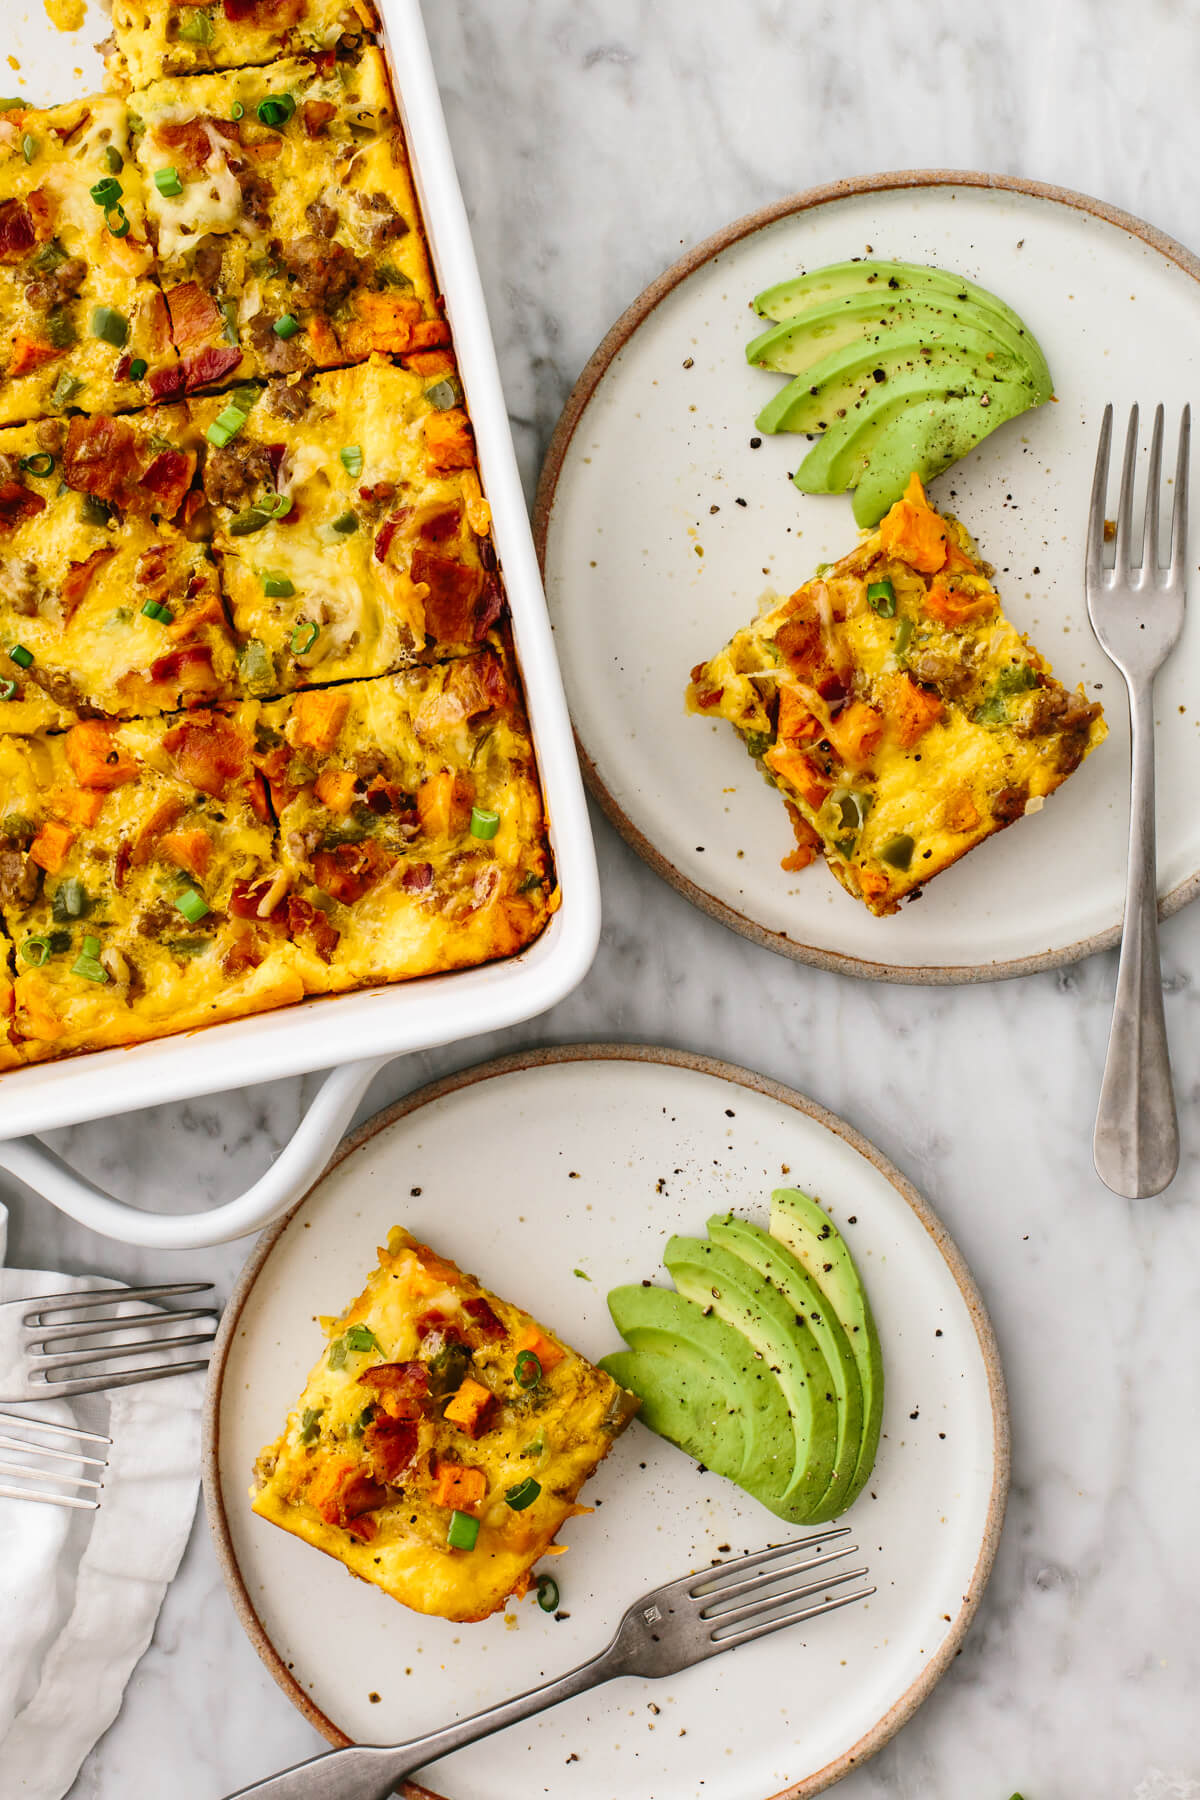 Loaded breakfast casserole pieces on two plates with avocado slices.